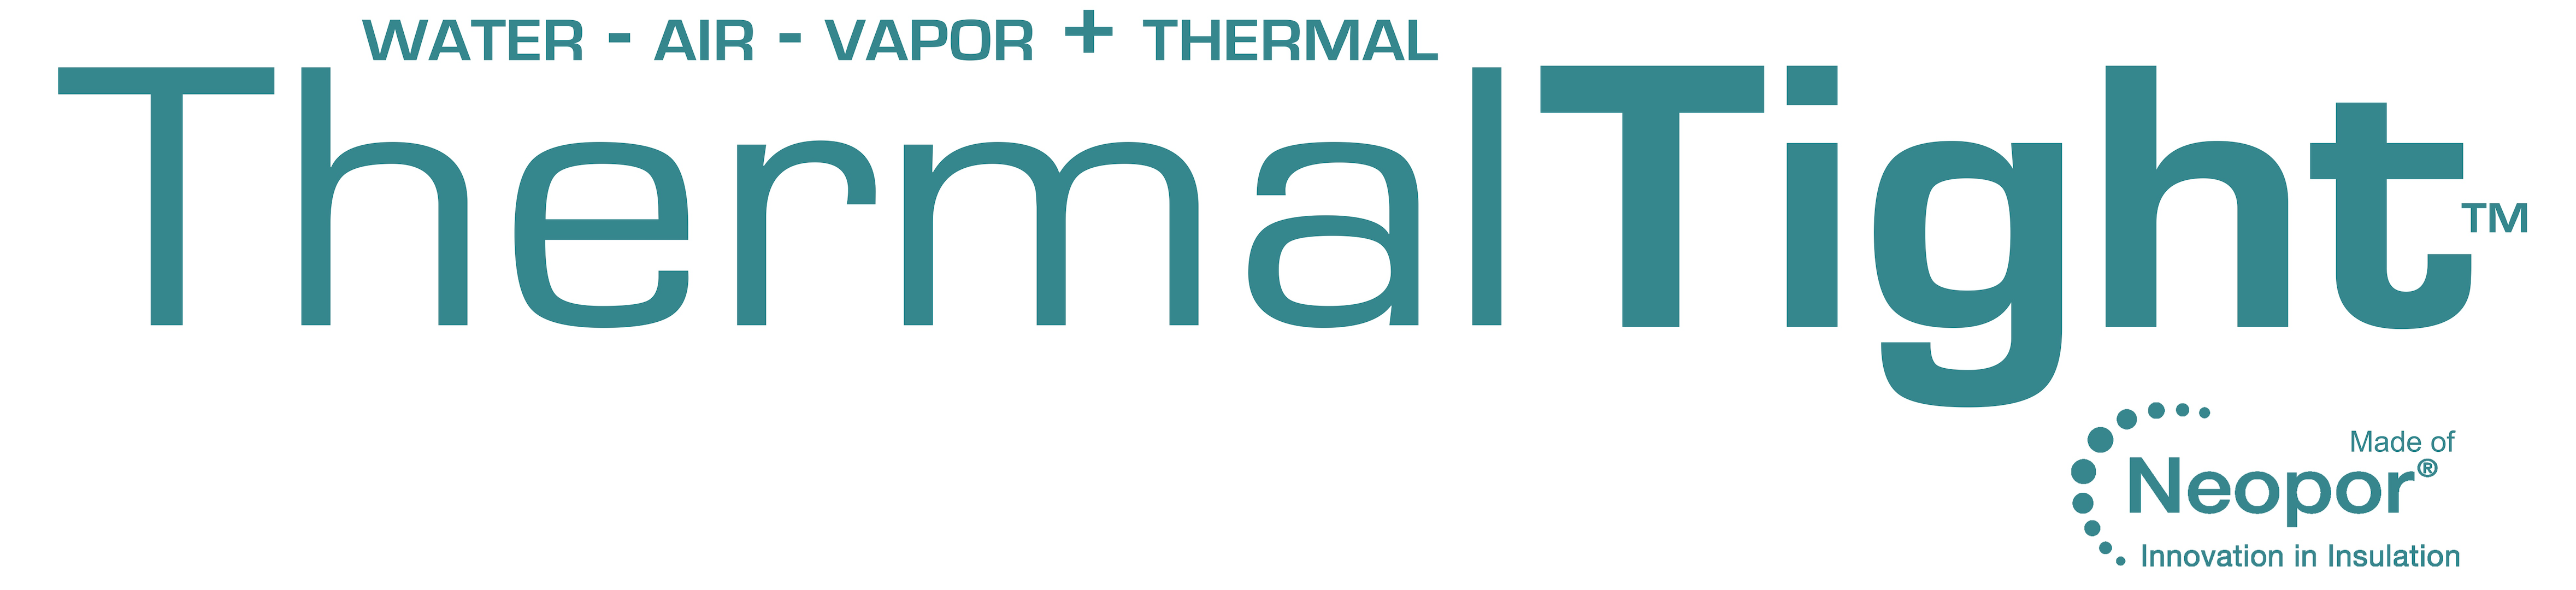 ThermalTight